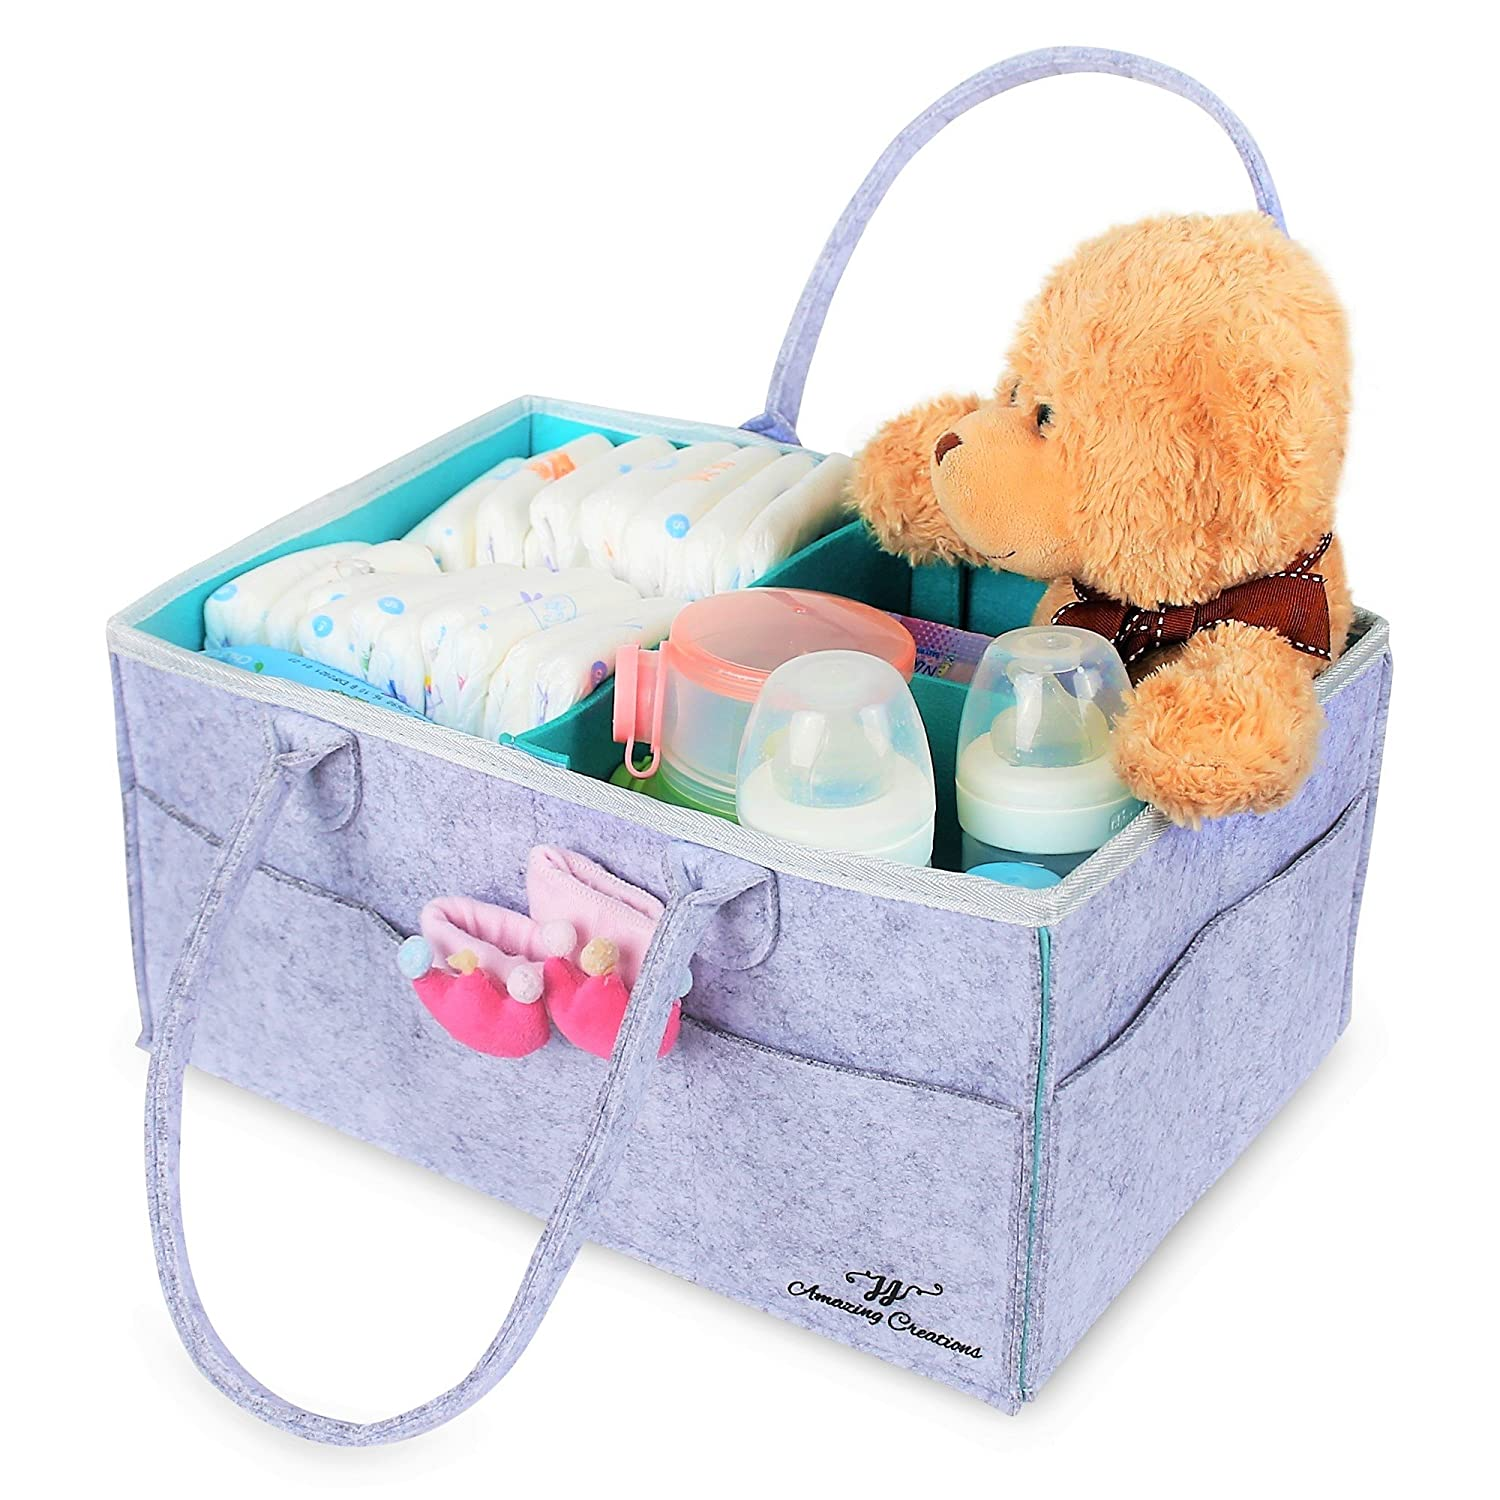 Baby Diaper Caddy Organizer : Portable Car Travel Bag | Grey Tote | Nursery Storage Bin for Changing Table | Newborn Registry Must Haves | Baby Shower Gift Basket for Boys and Girls | Stackers | Crib JJ Amazing Creations